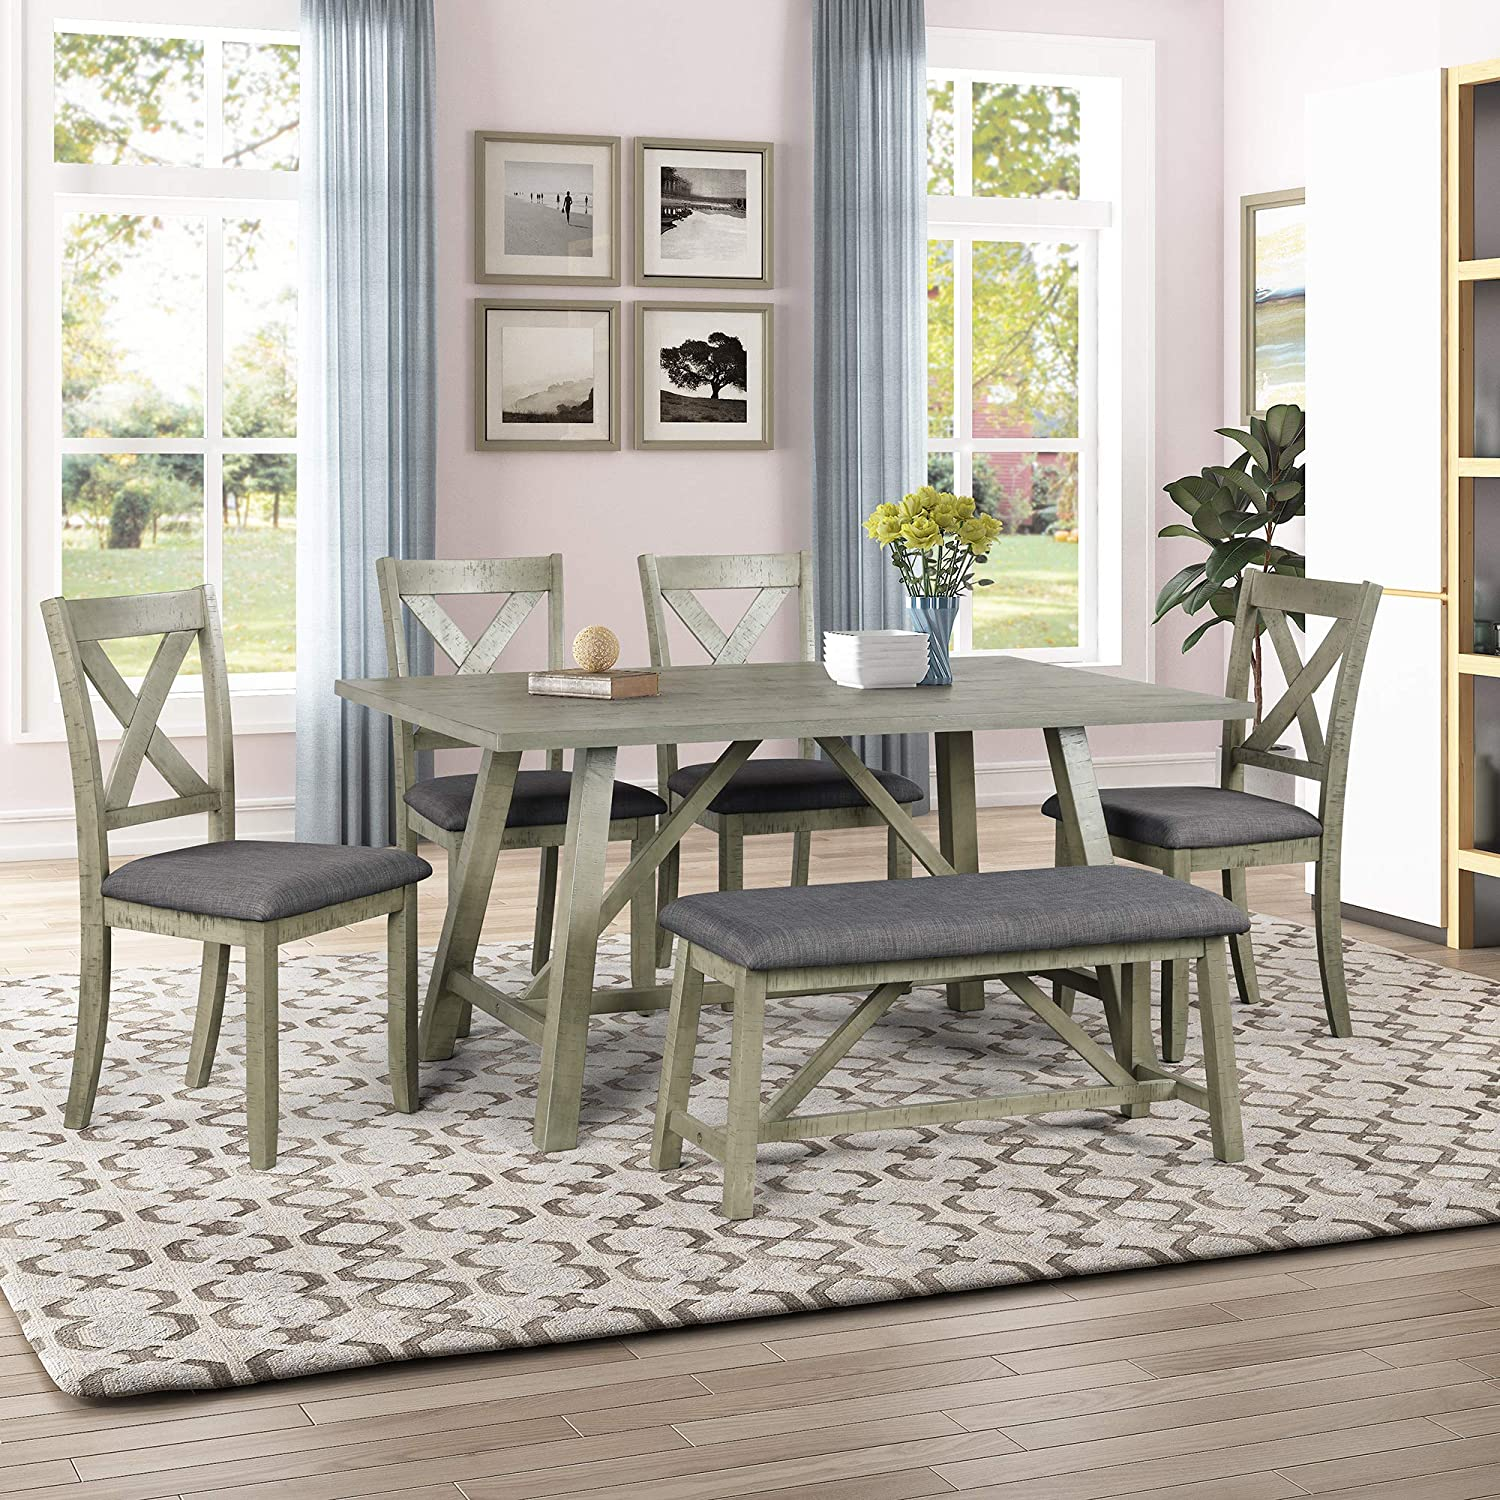 Amazon Com P Purlove 6 Piece Dining Table Set Dining Room Set With Table Bench And 4 Chairs Wood Dining Table And Chair Kitchen Table Set For 6 Persons Table Chair Sets